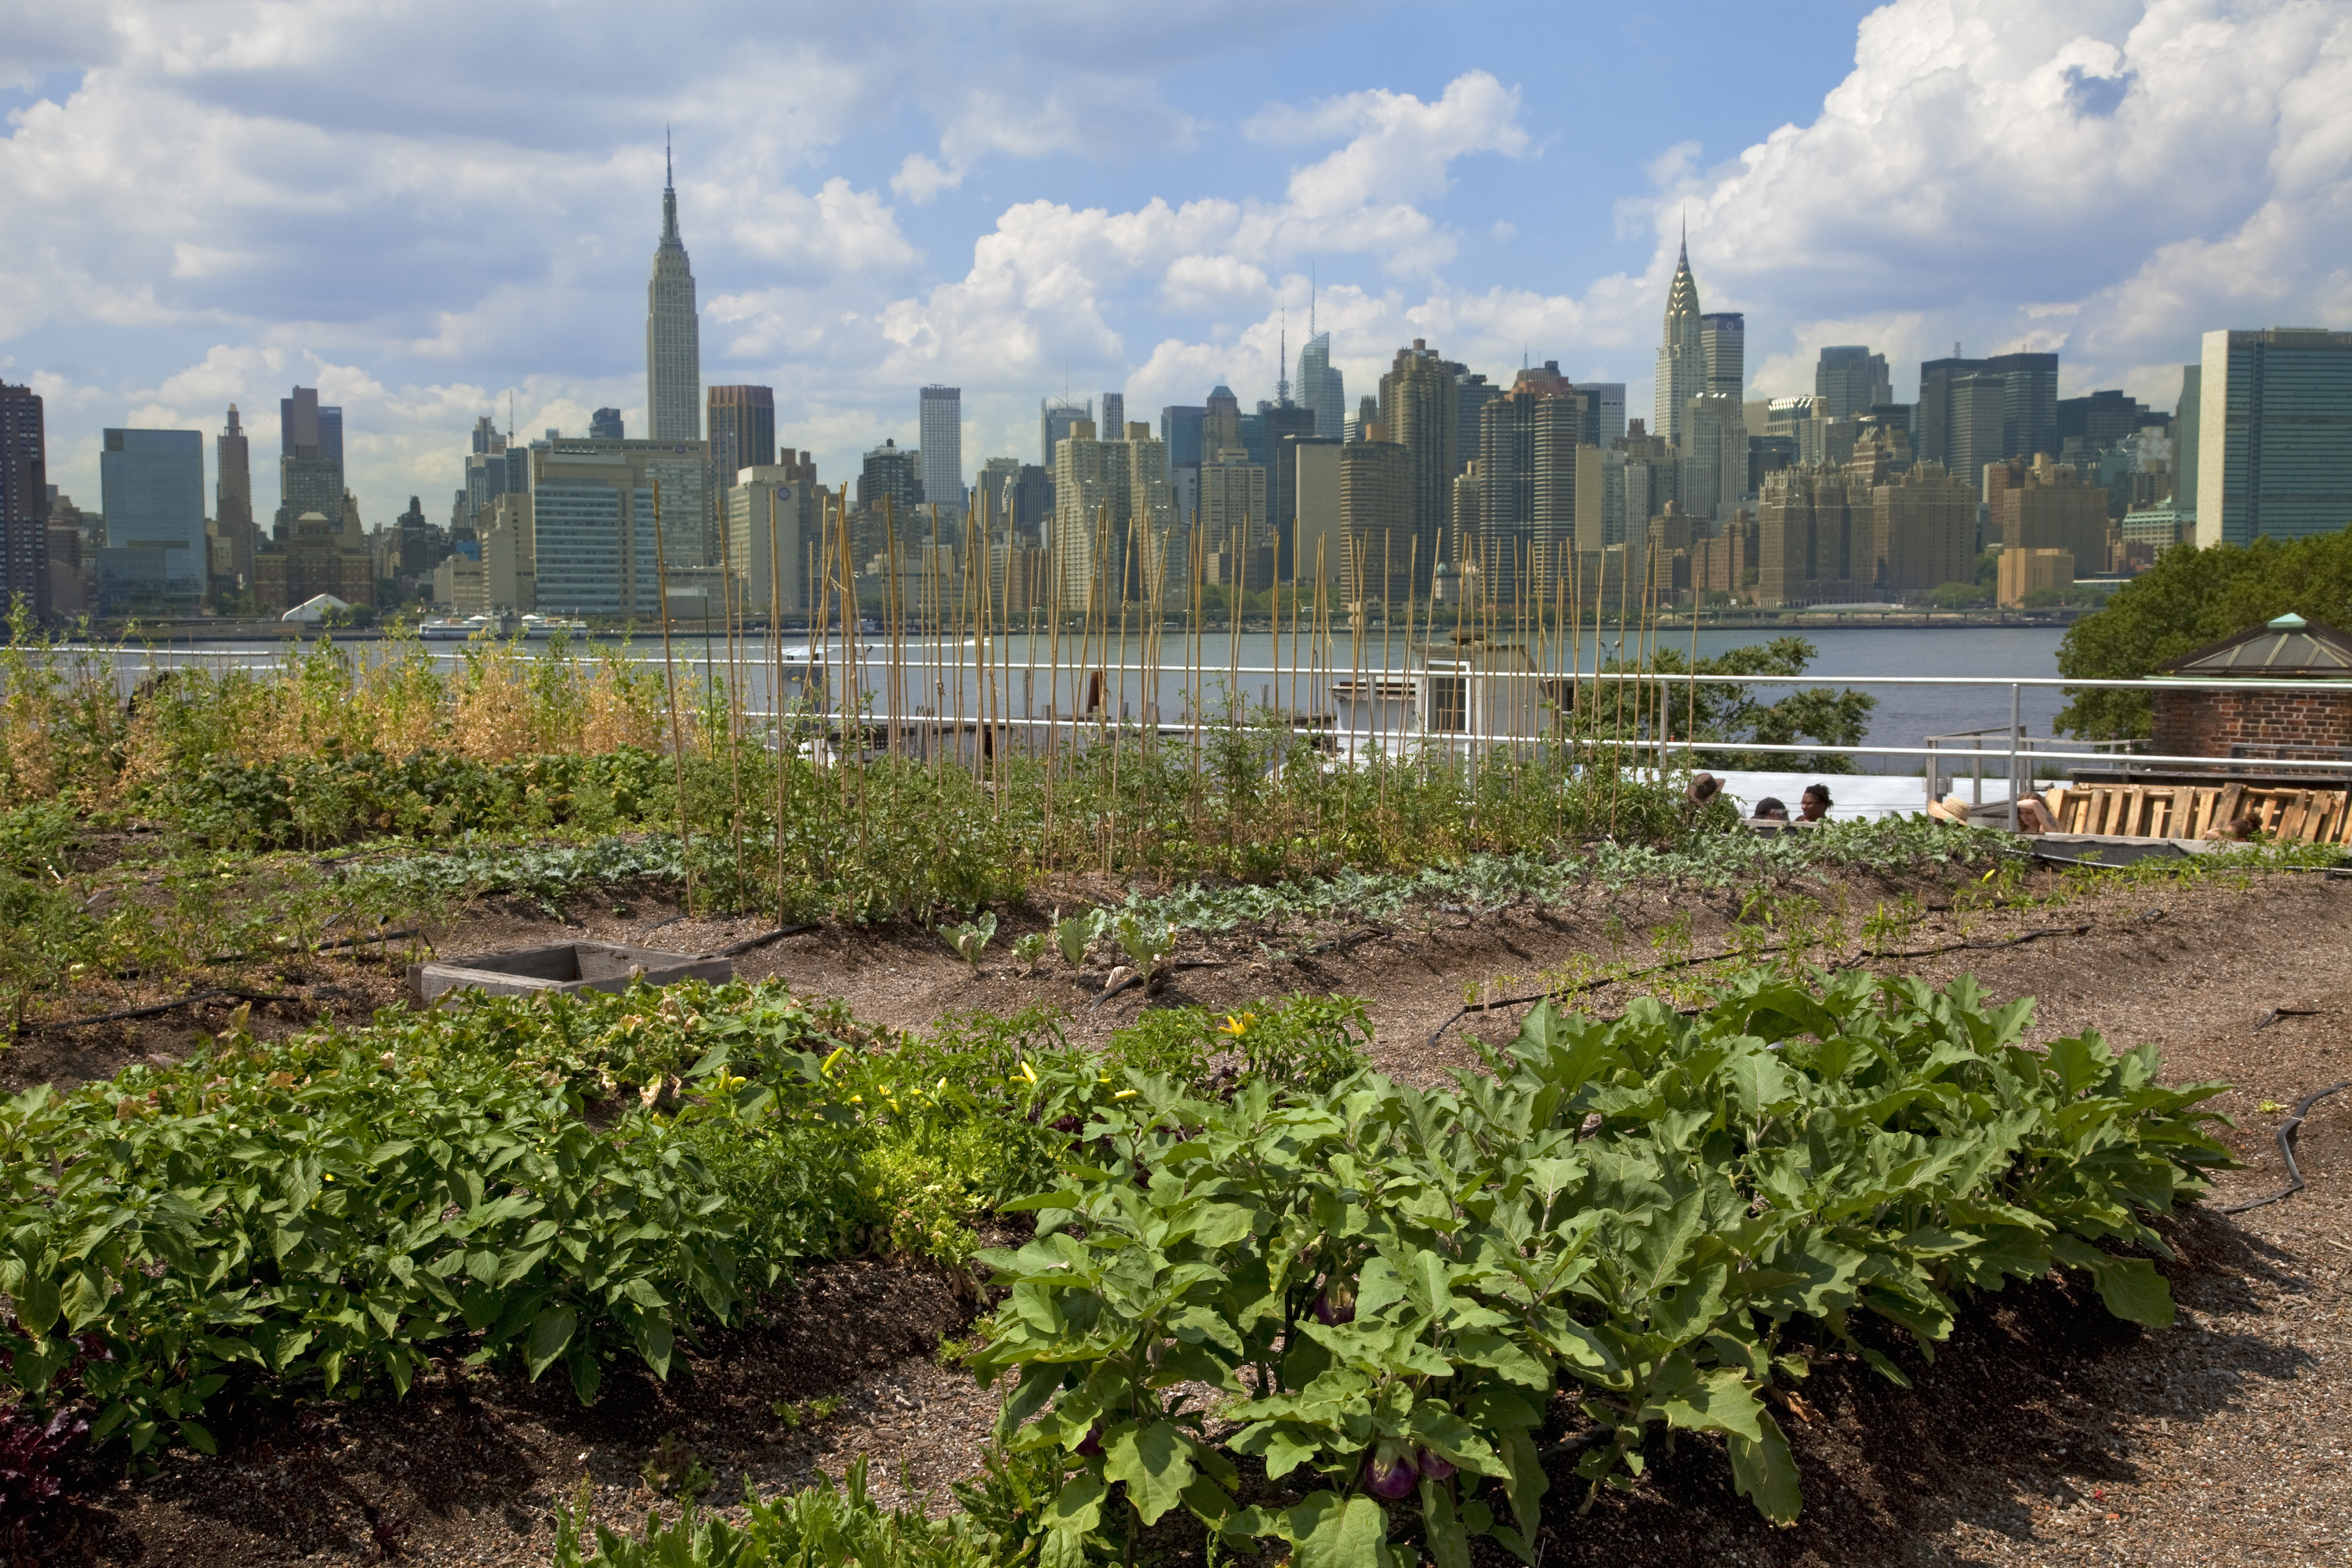 New York City's best urban farms: Brooklyn Grange and more - Curbed NY